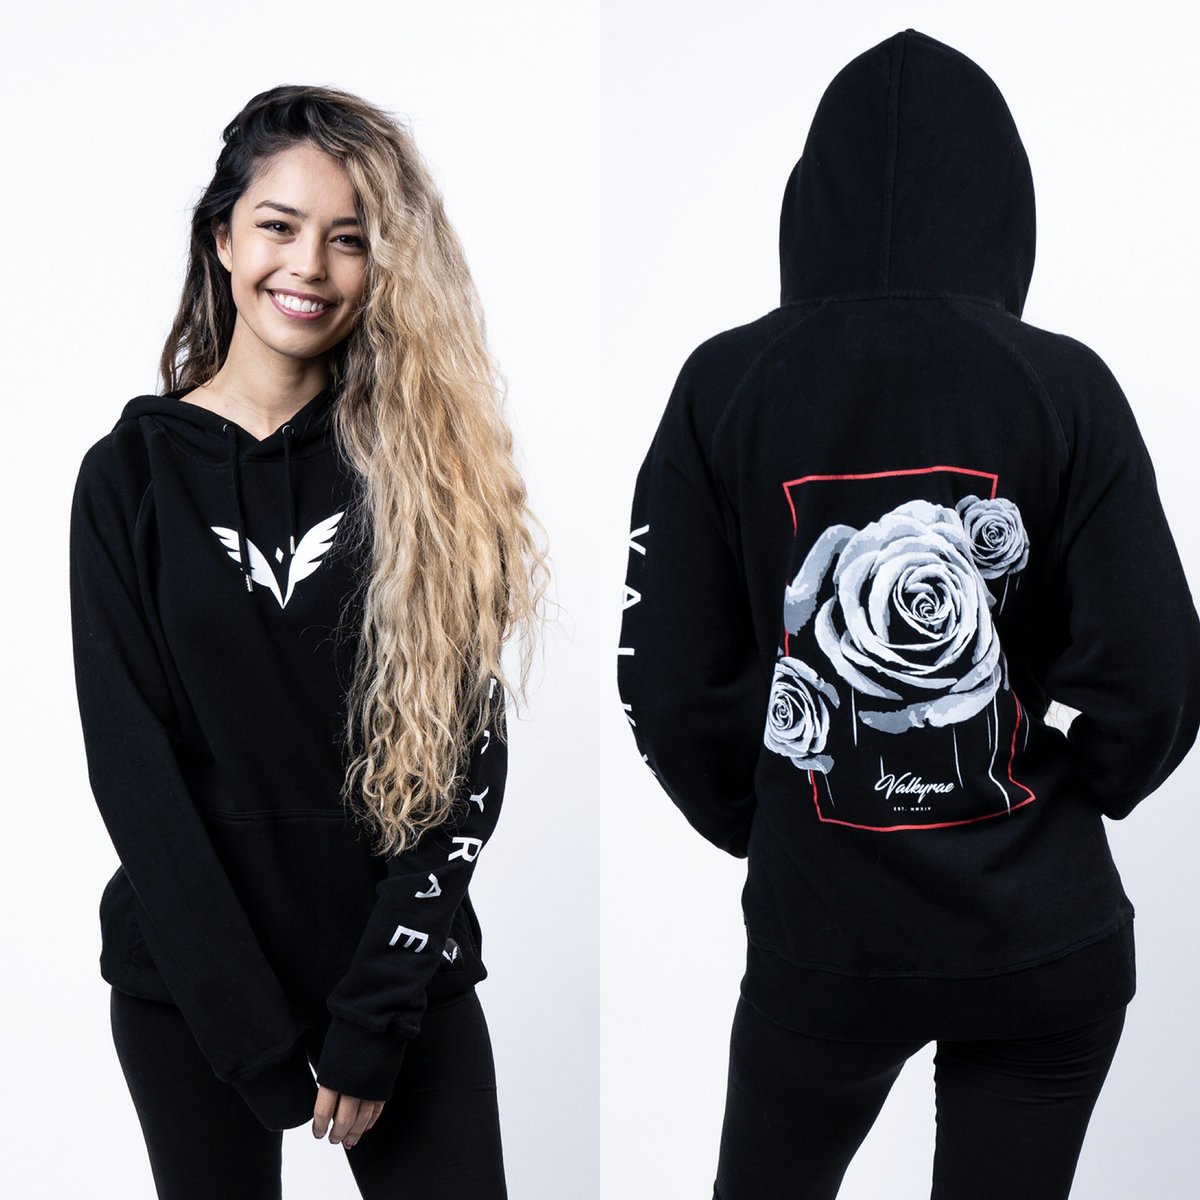 """My Merch is now available for 2 weeks starting right now! First 1,000 orders get a signed sticker pack that I'll be signing live on stream ☺️❤️ All Merch pre-ordered while I'm live will pop up as an alert on stream! 🎉 Mousepad is 17""""x15"""" Check it out: metathreads.com/collections/va…"""